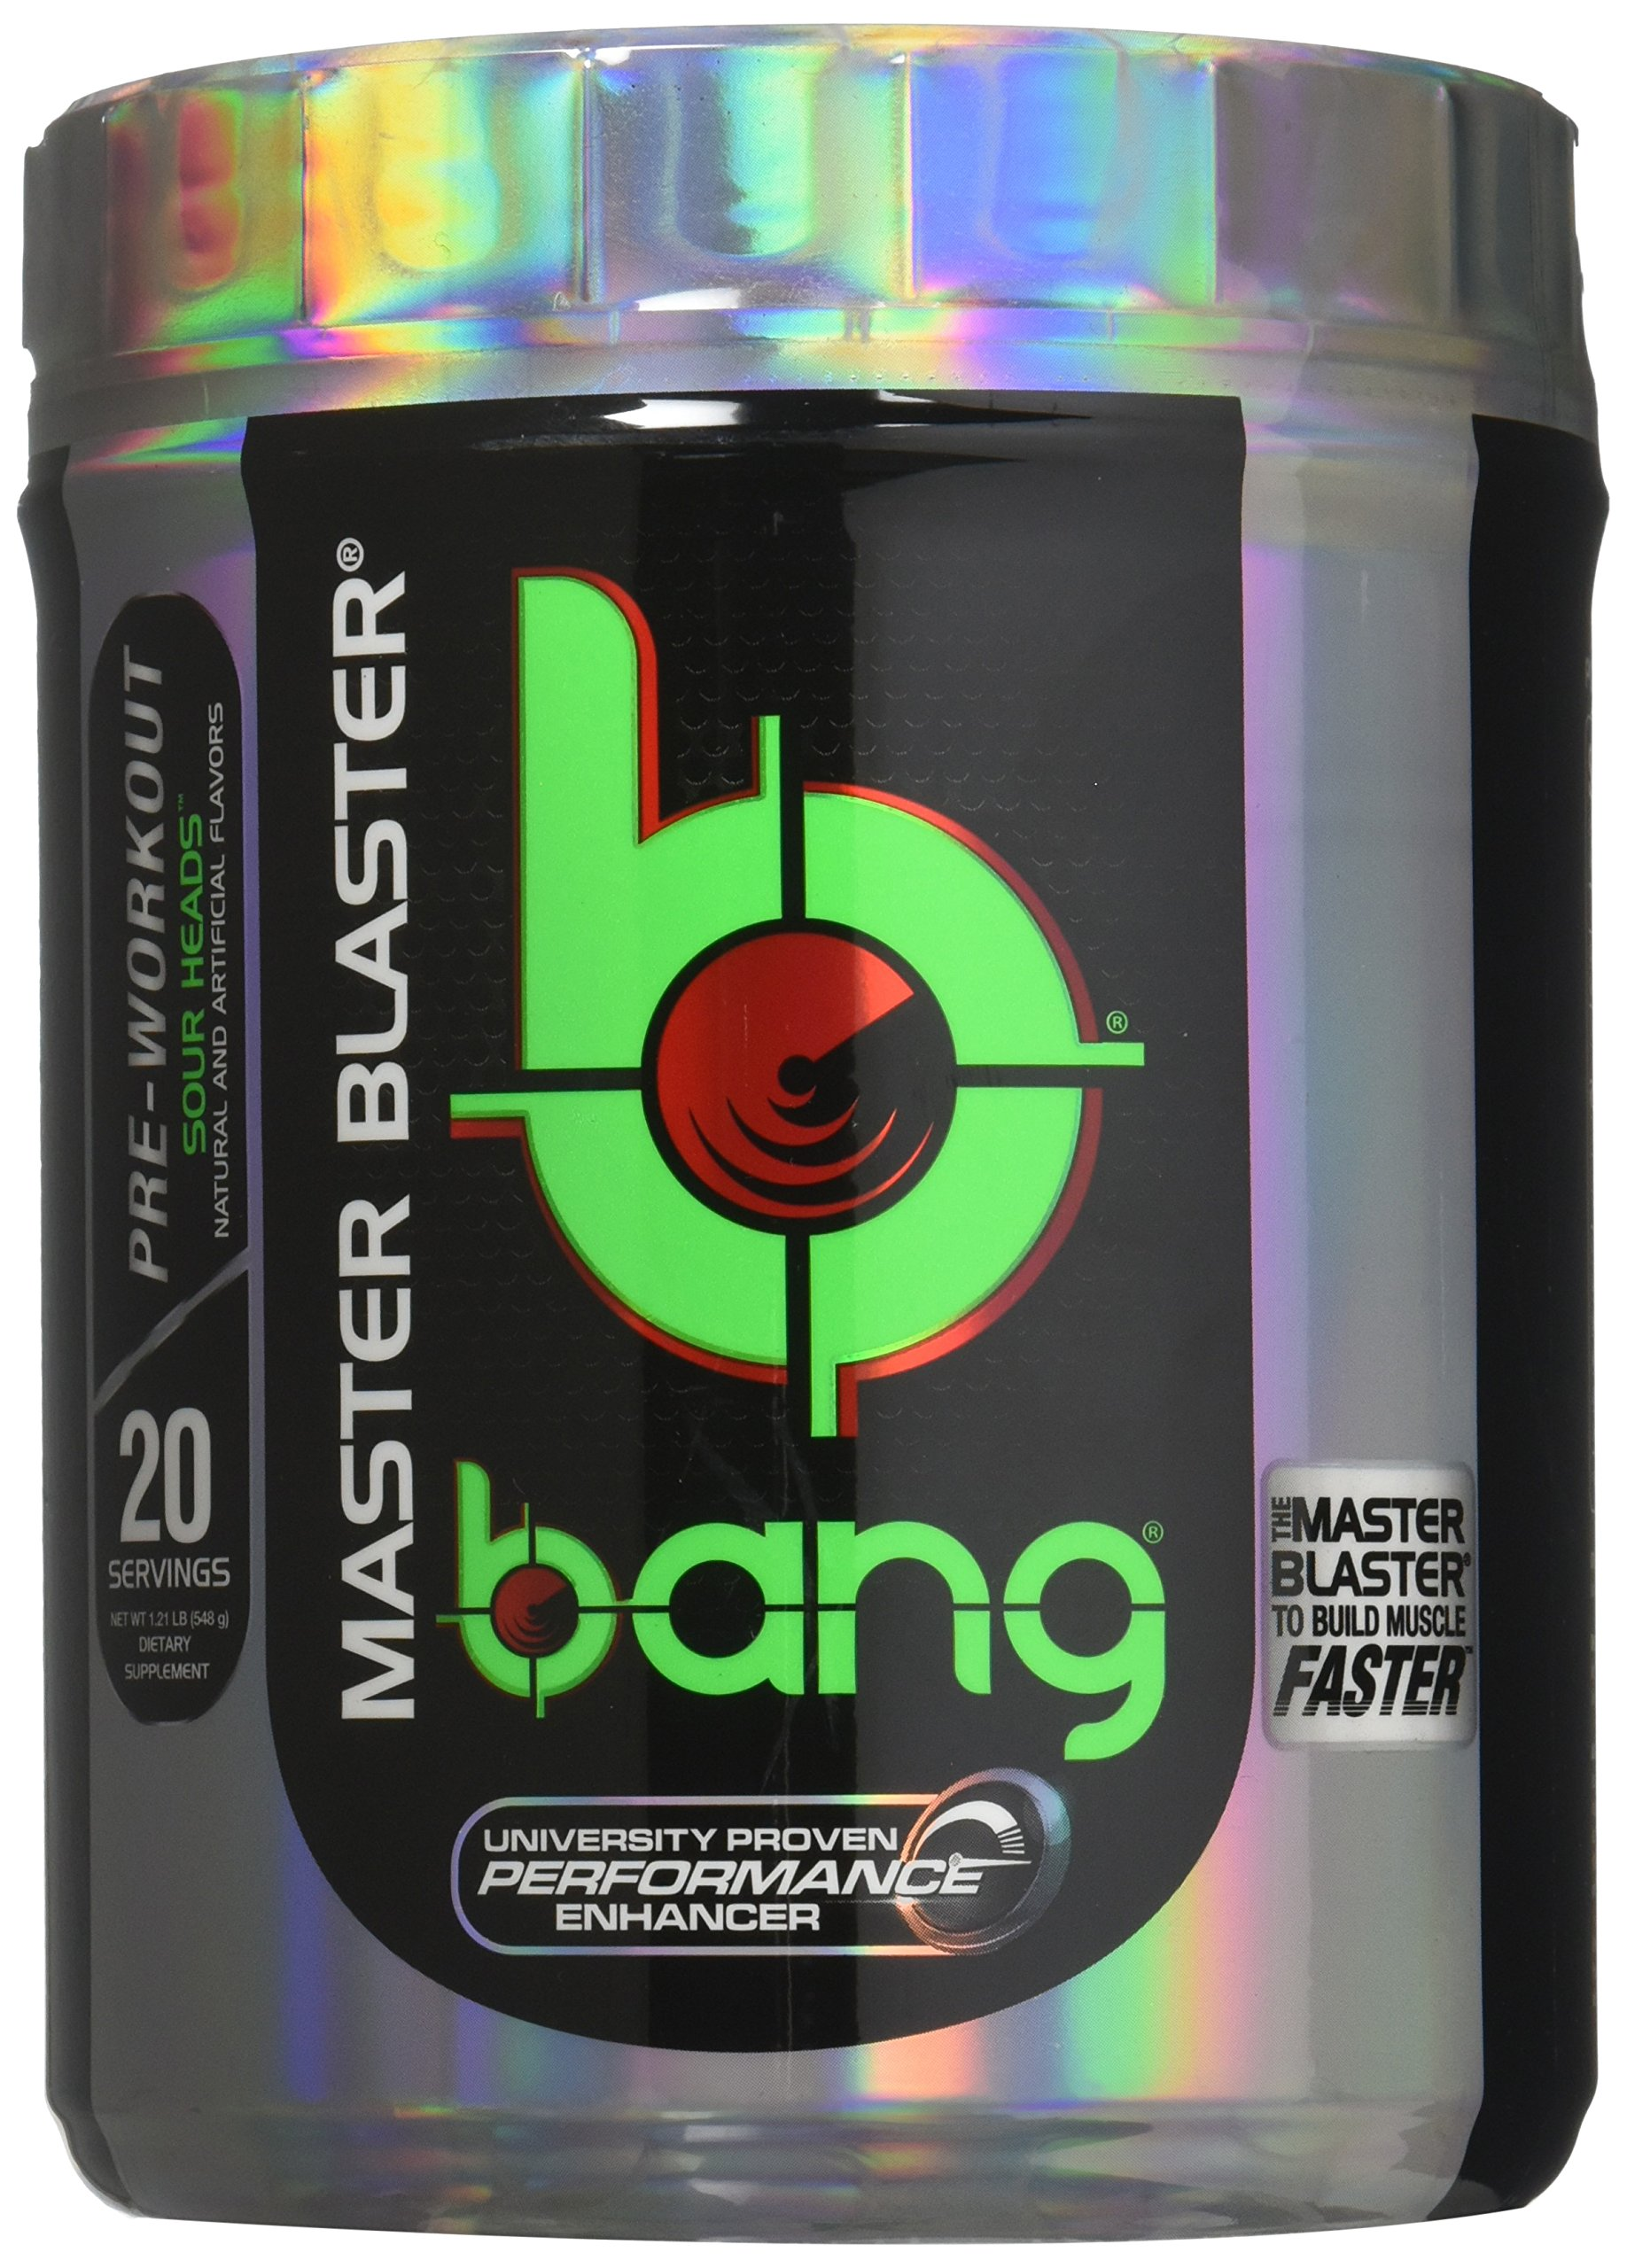 VPX Bang Pre-Workout Master Blaster, Sour Heads, 20 Servings by VPX